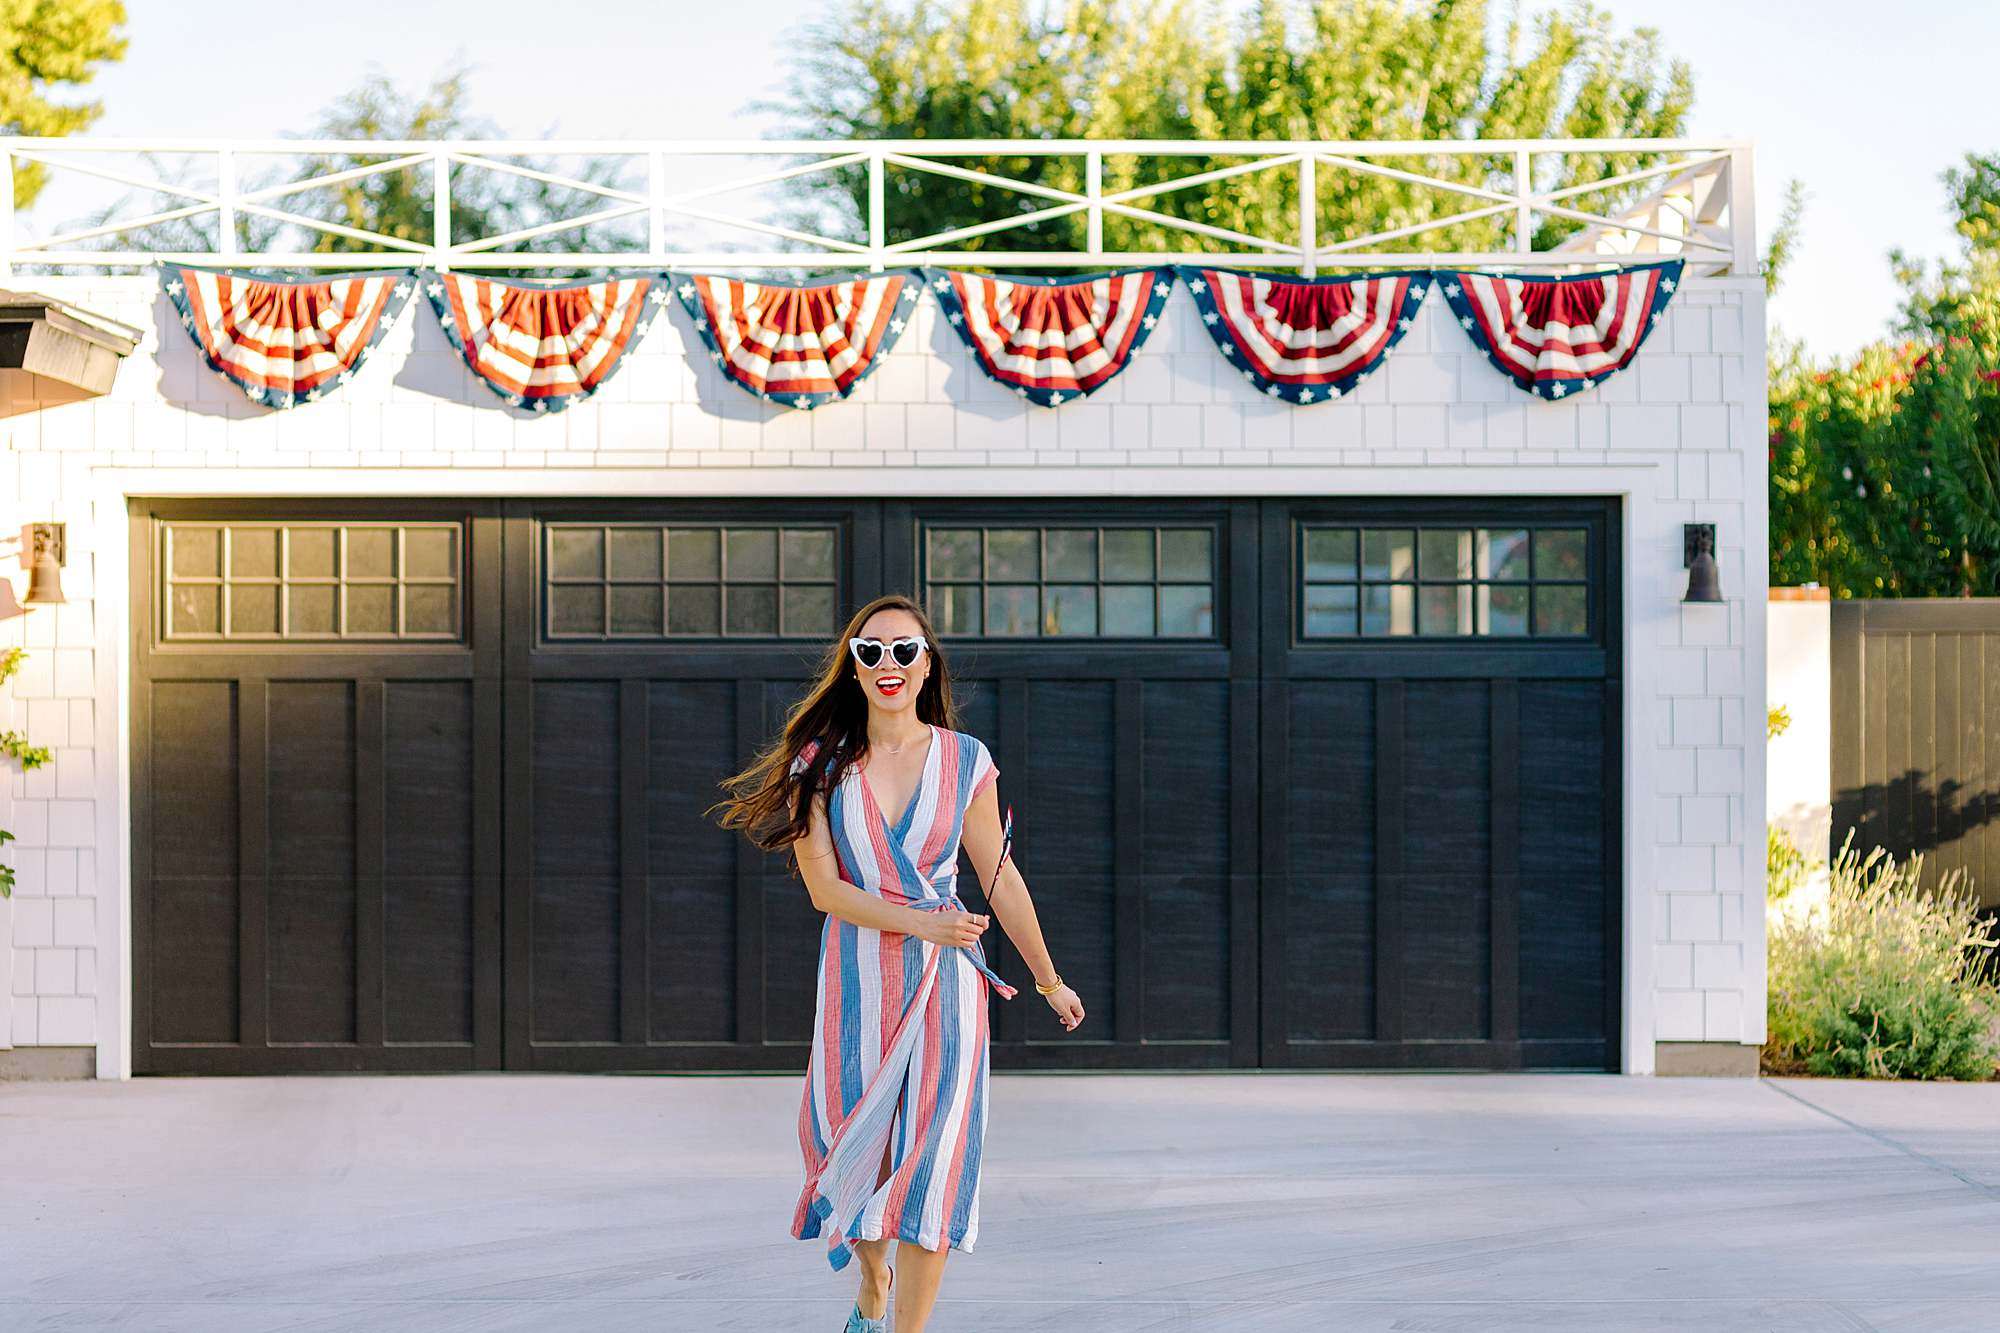 red white and blue dress for the Fourth of July, American flag bunting across the garage